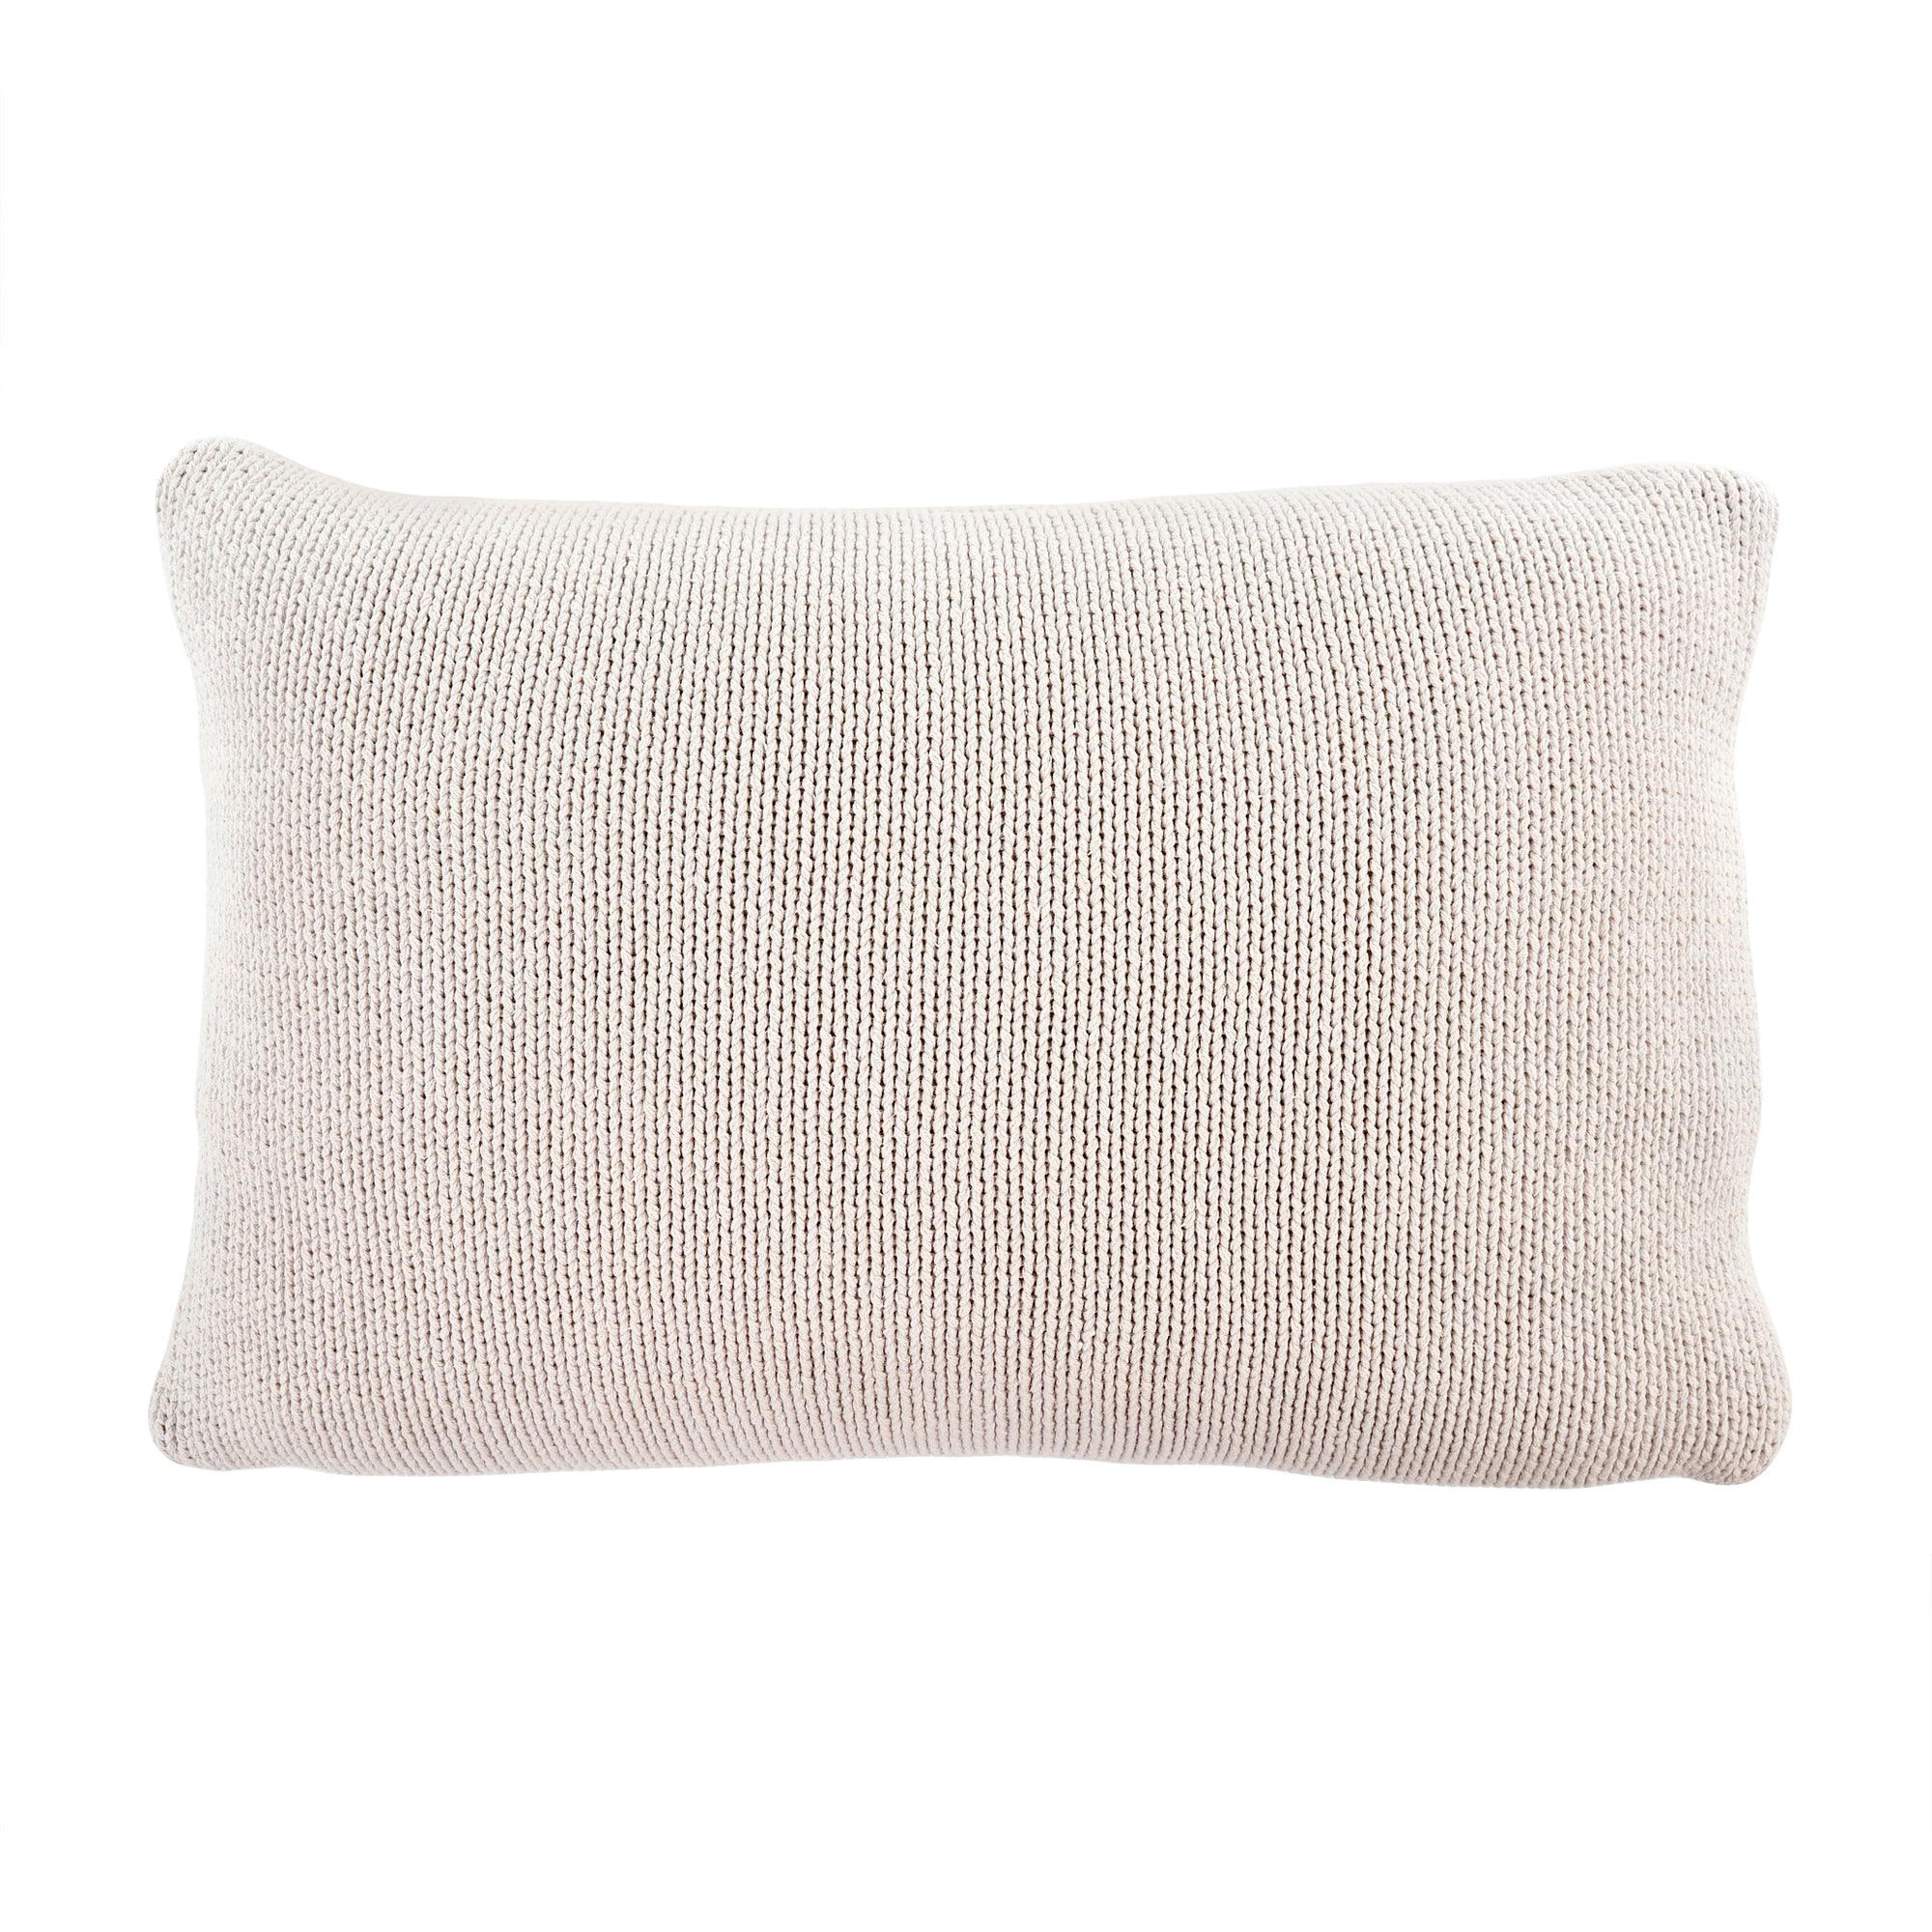 Mocha Cotton Pillow